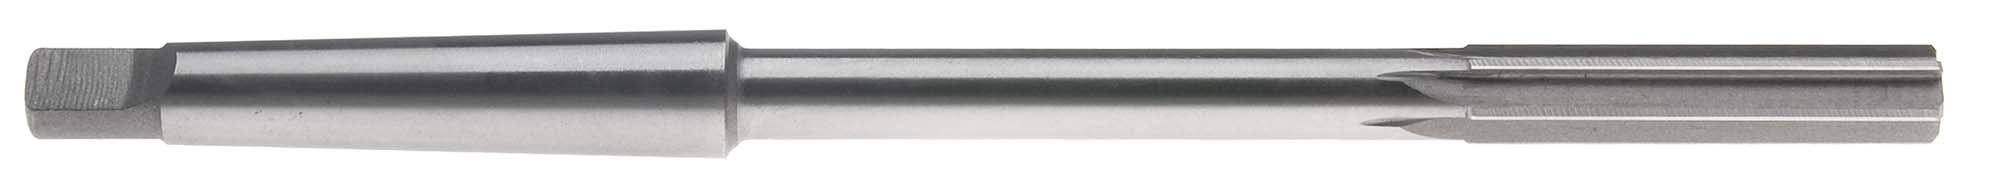 "1-5/16"" Taper Shank Machine Reamer, Straight Flute, High Speed Steel"